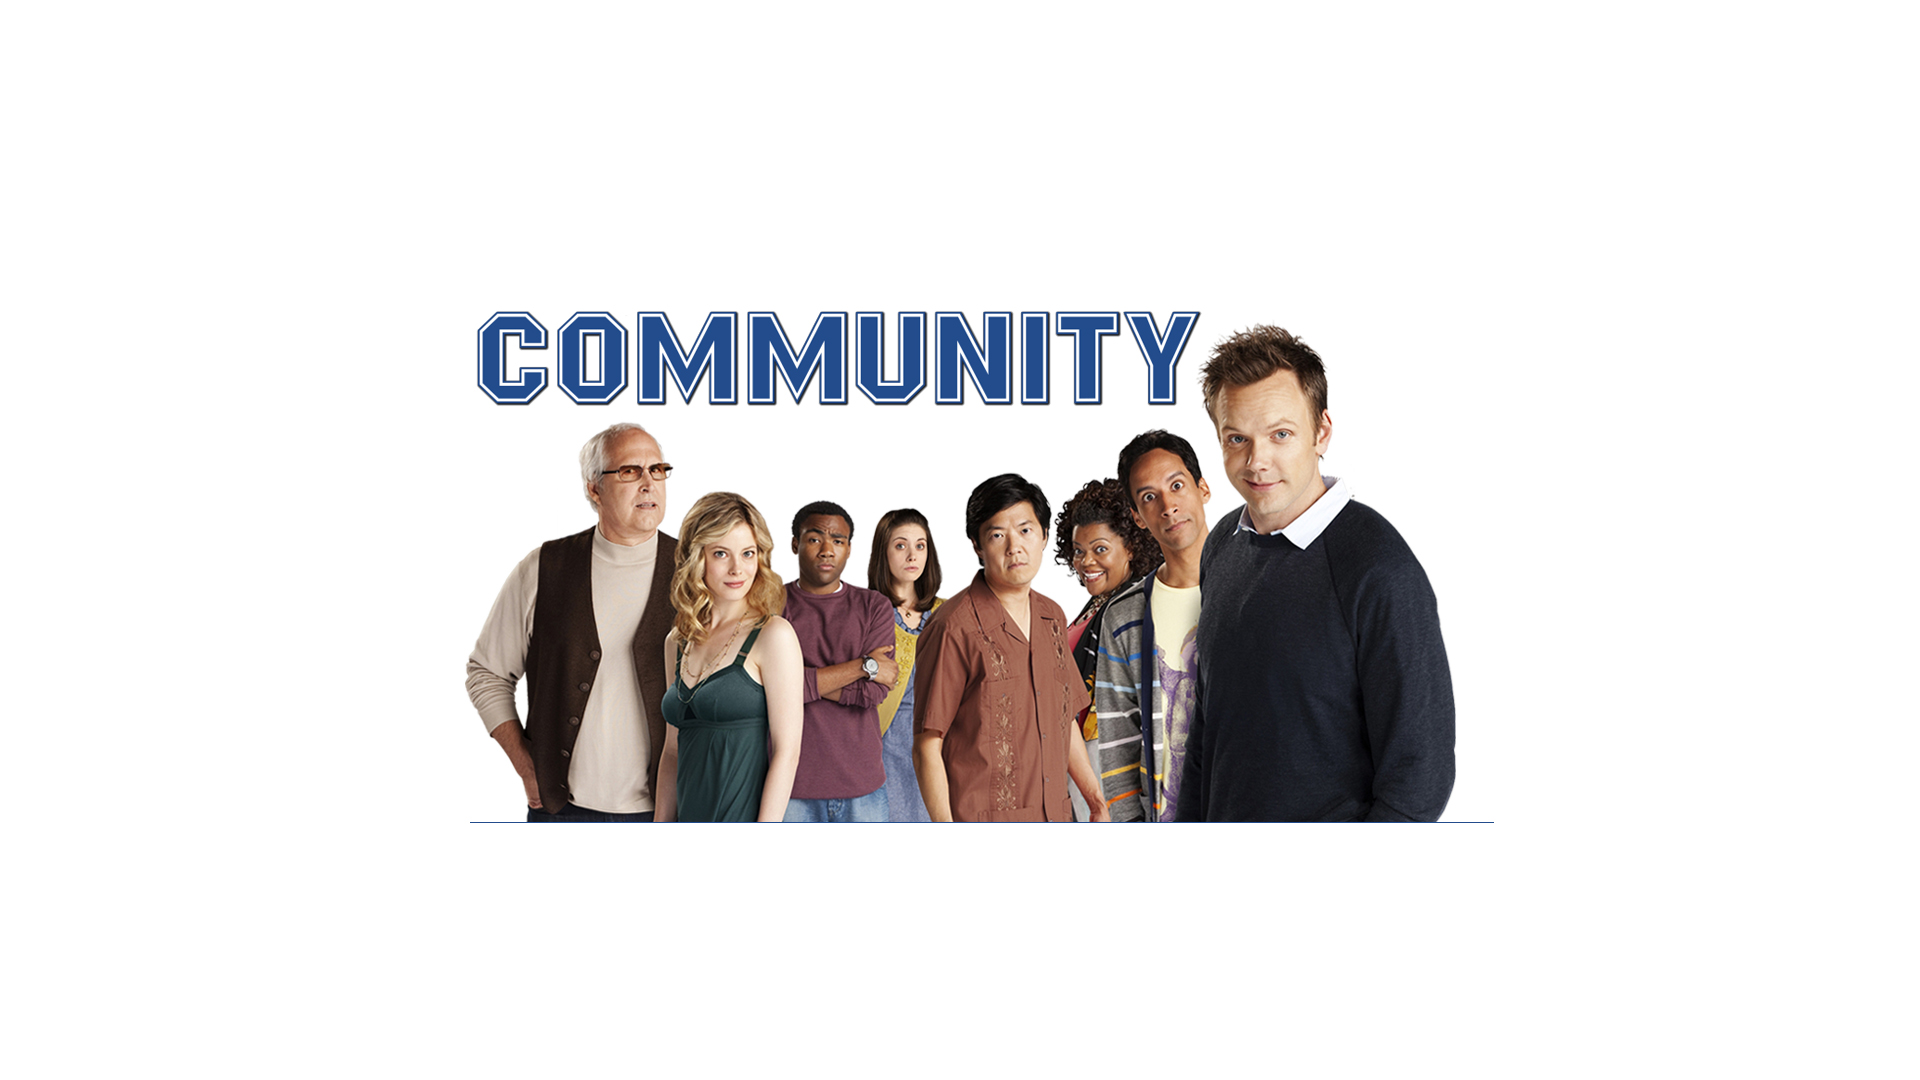 Community wallpaper 1